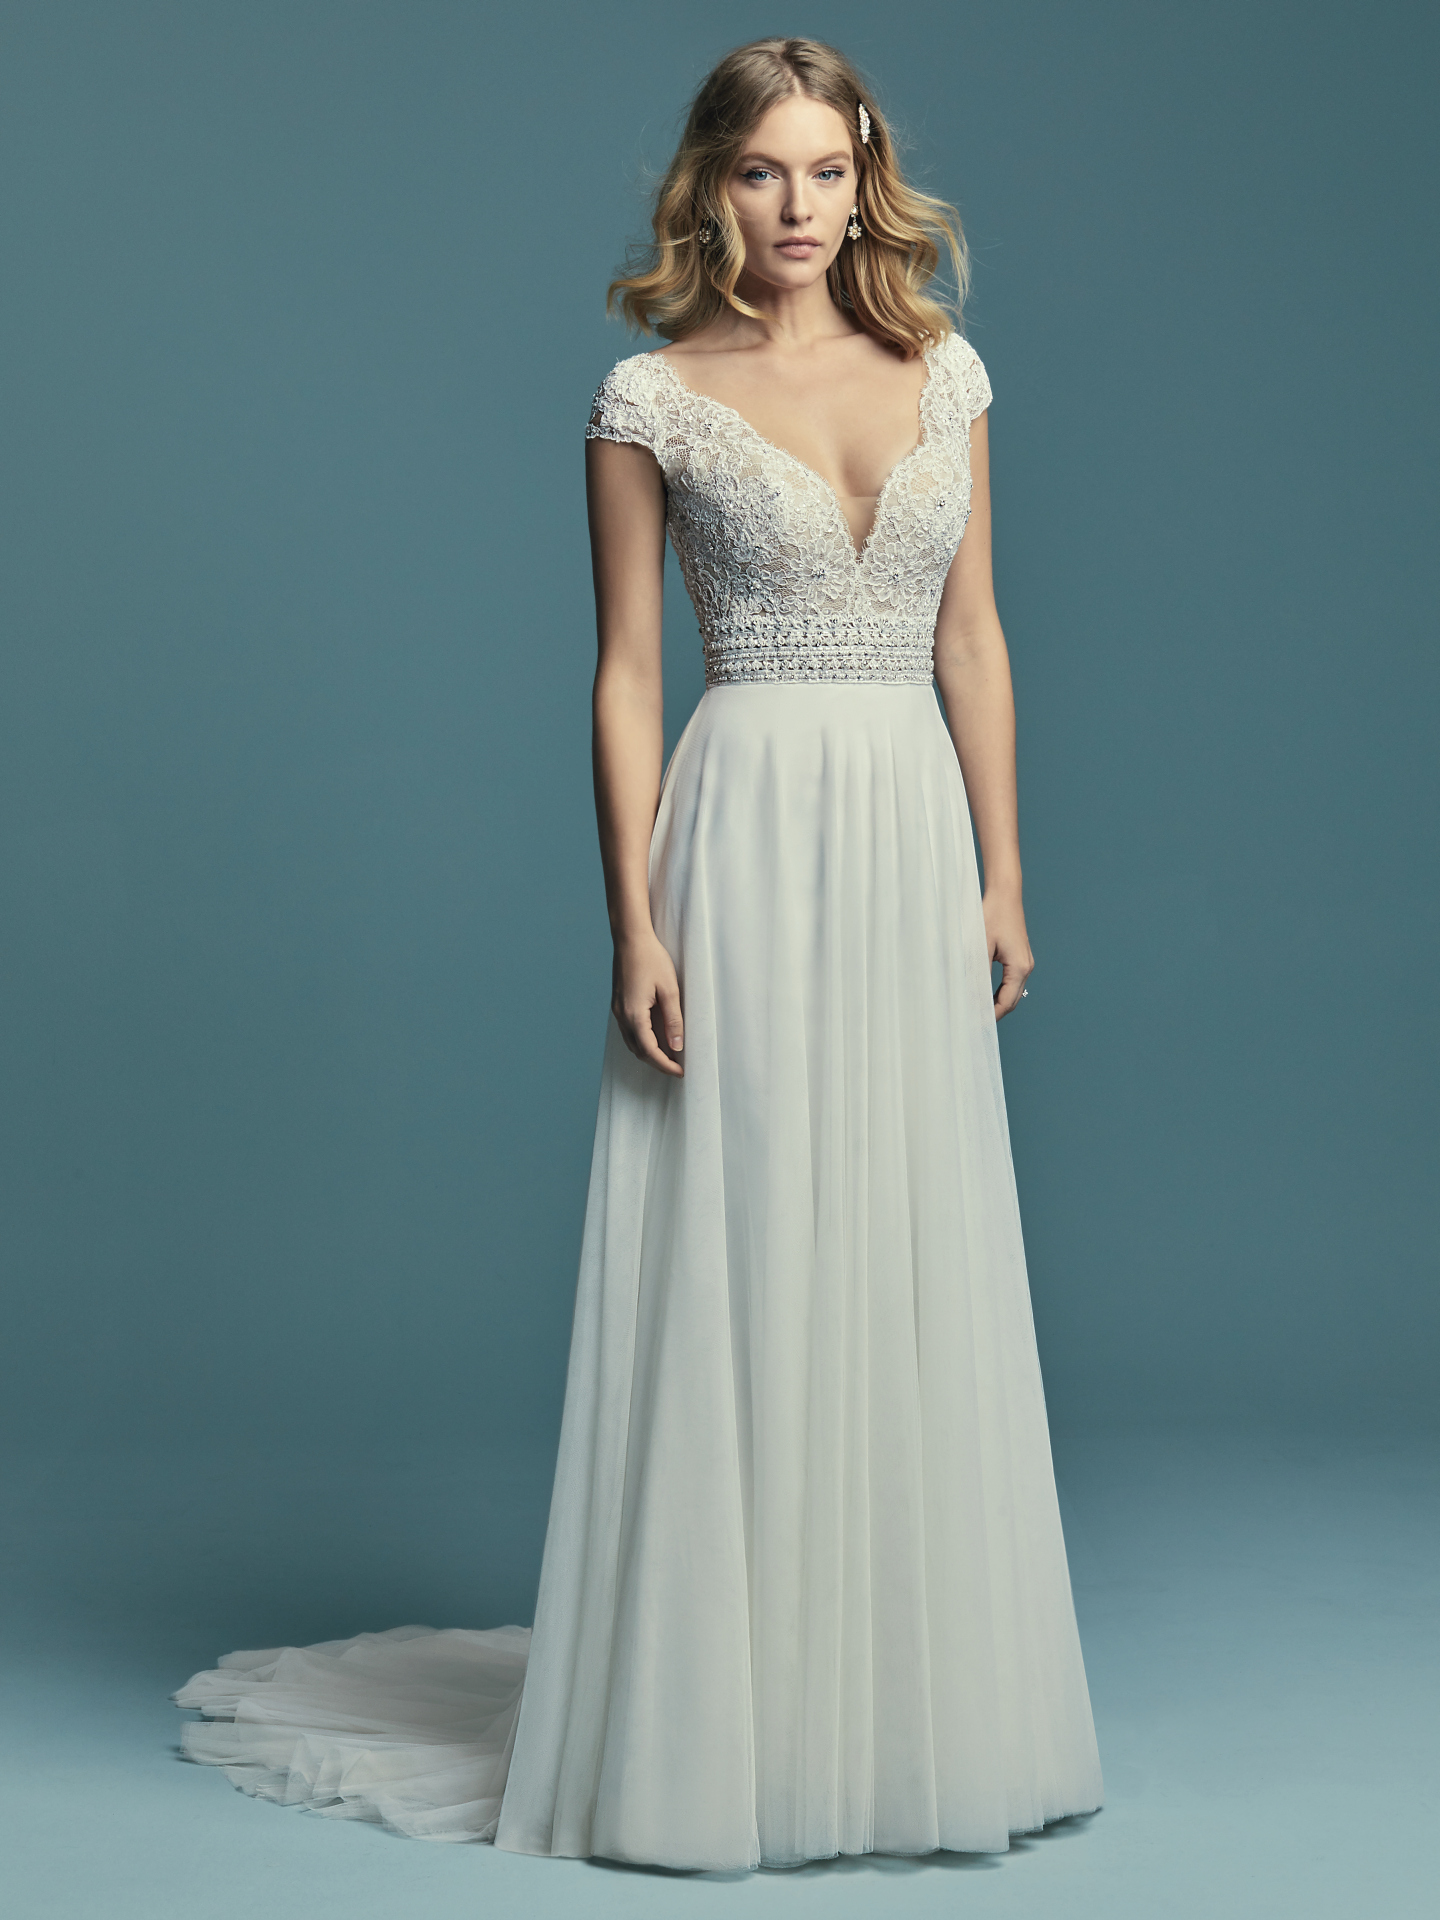 Finding the Perfect Dress for Your Body Type - Love Maggie : Love Maggie